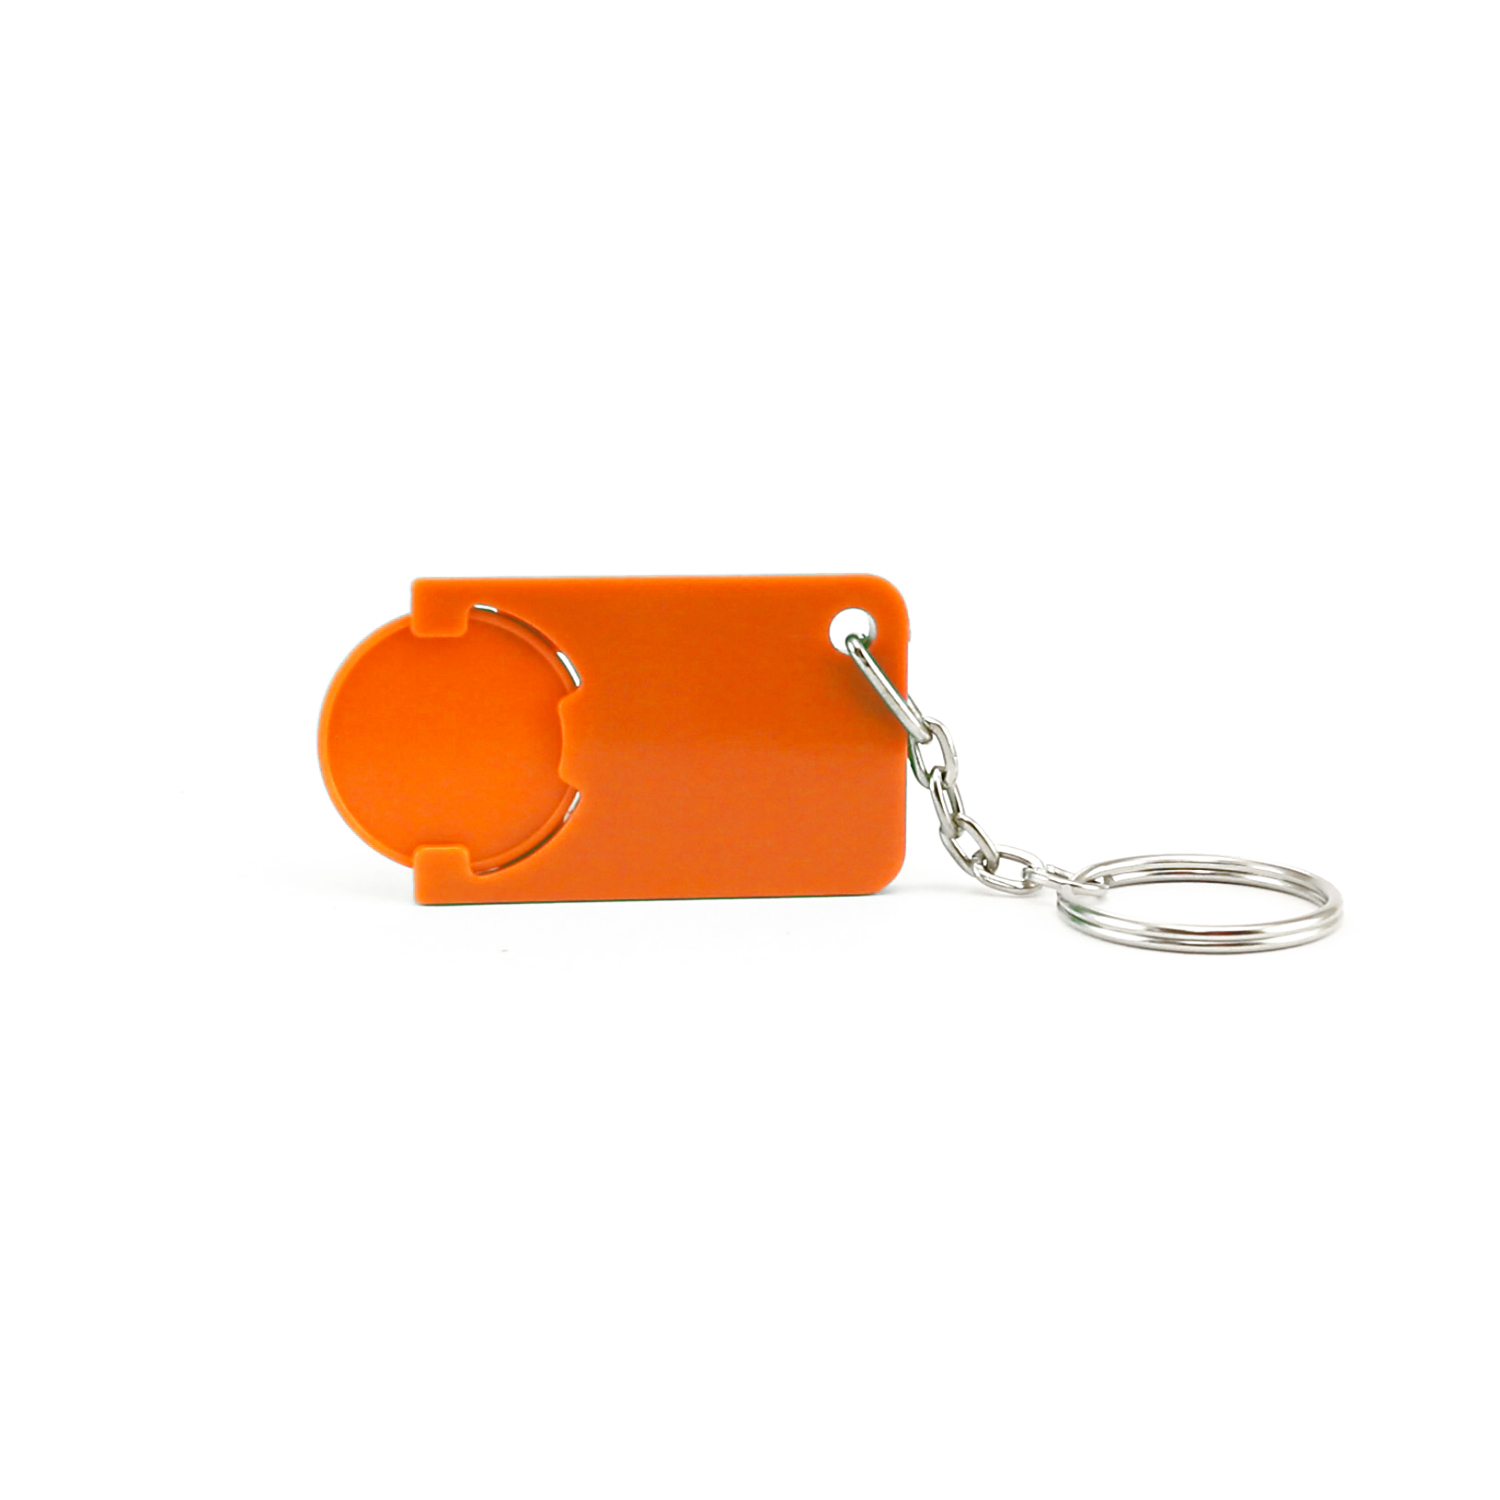 Keychain 039 (Shopping Trolley coin keychain) - hmi47039-11 (Orange)